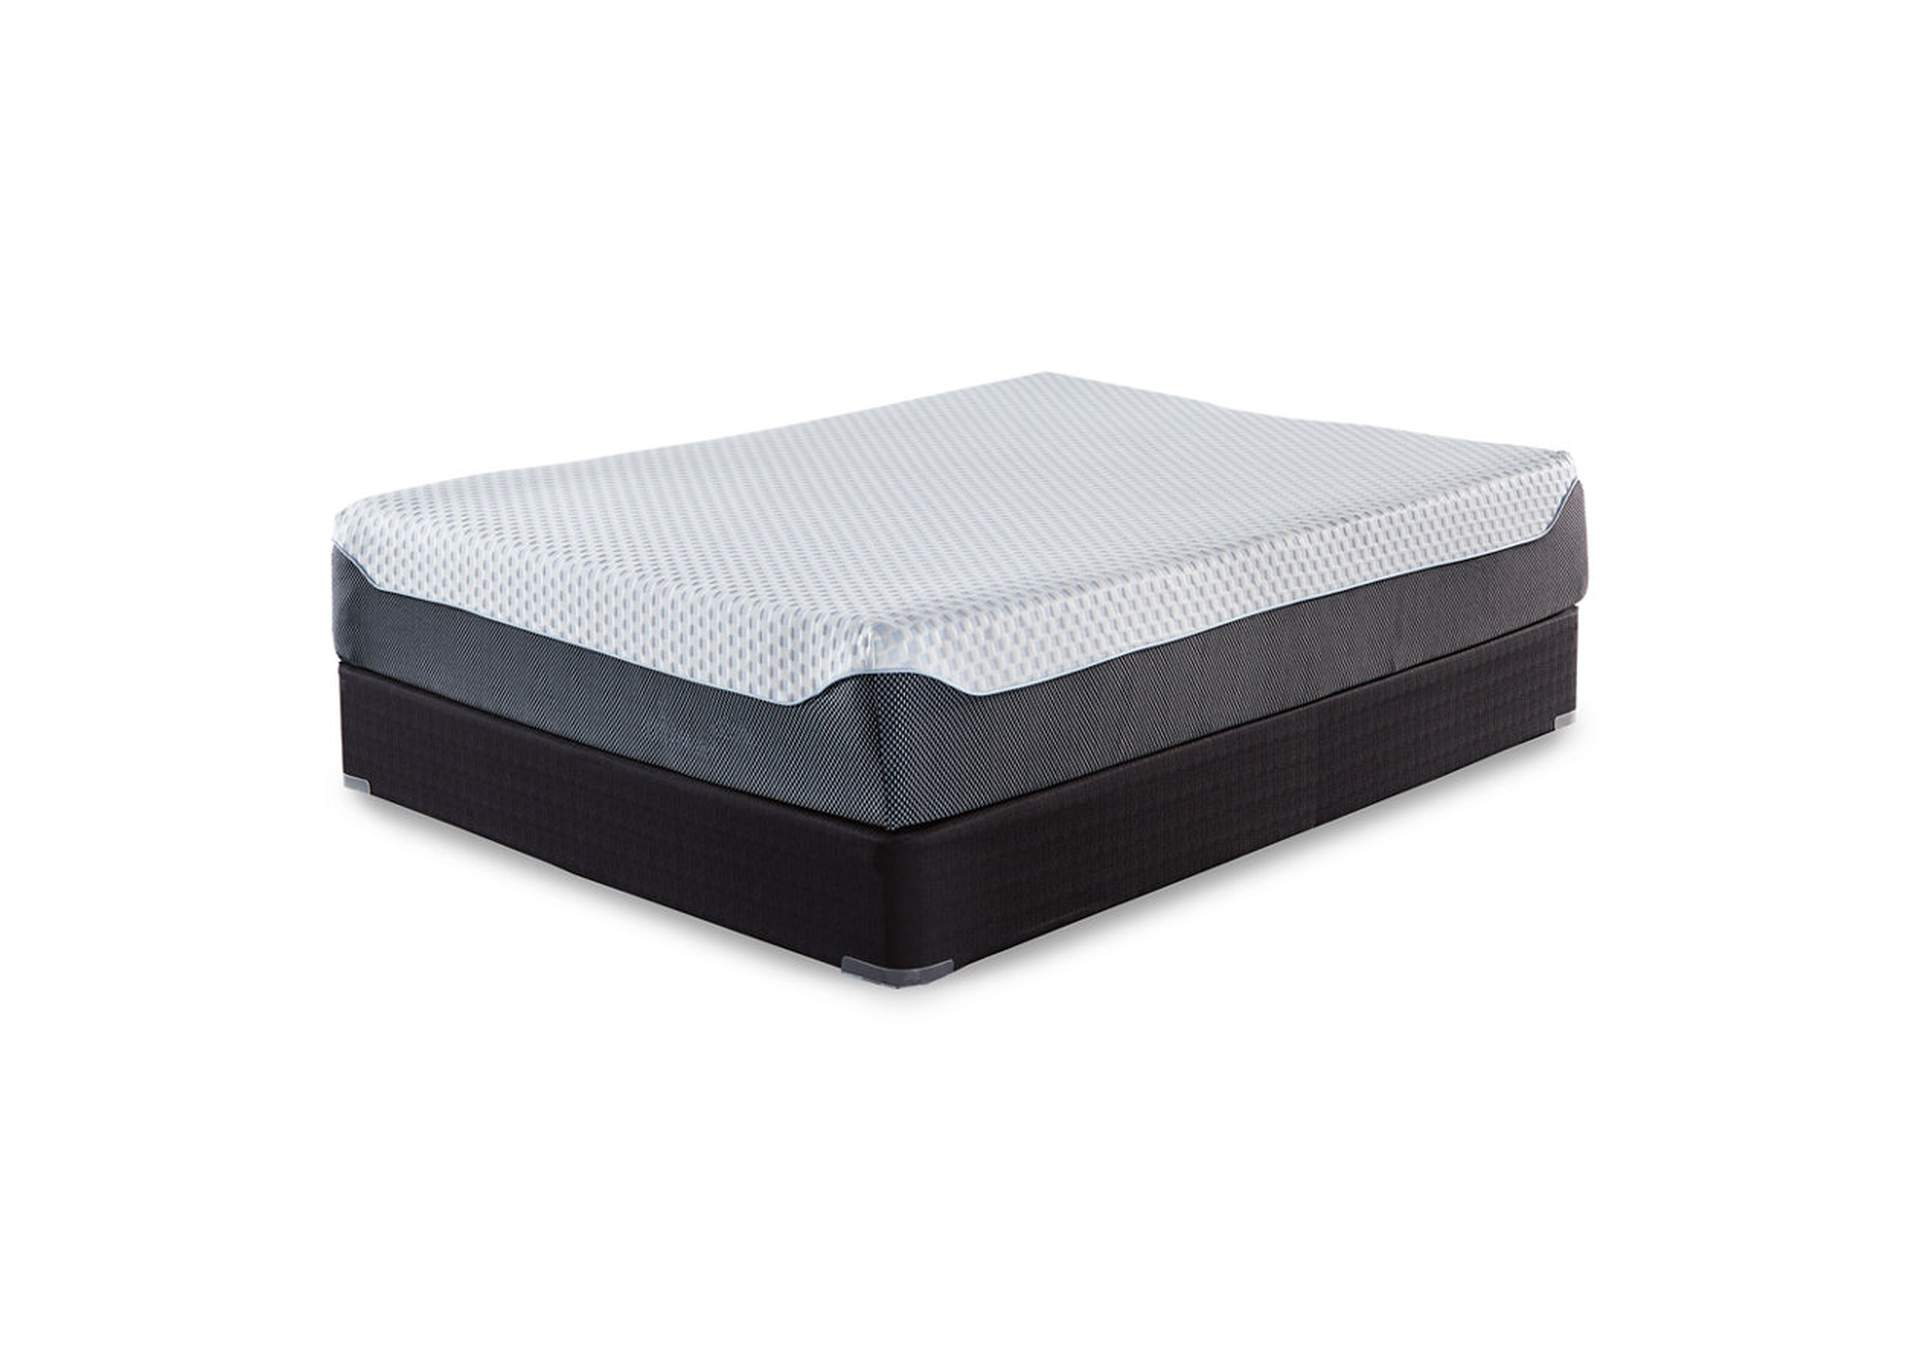 12 Inch Chime Elite Full Memory Foam Mattress in a box w/Foundation,Sierra Sleep by Ashley